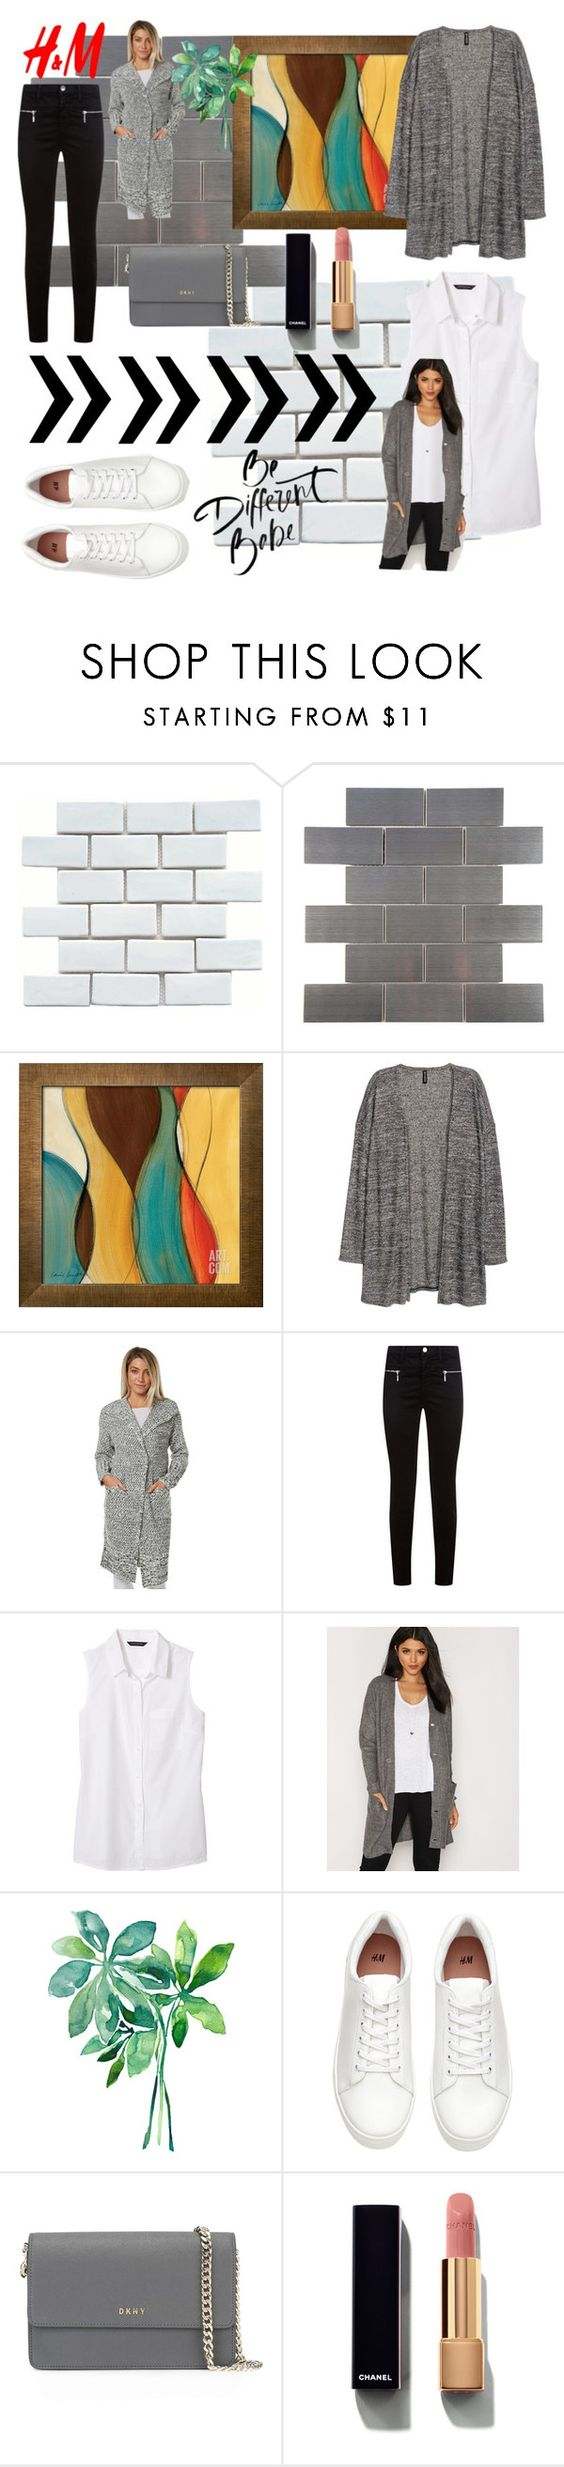 """""""Cardigan"""" by rizqinarahmalia ❤ liked on Polyvore featuring Merola, H&M, MINKPINK, J Brand, Banana Republic, ONLY, DKNY and Chanel"""